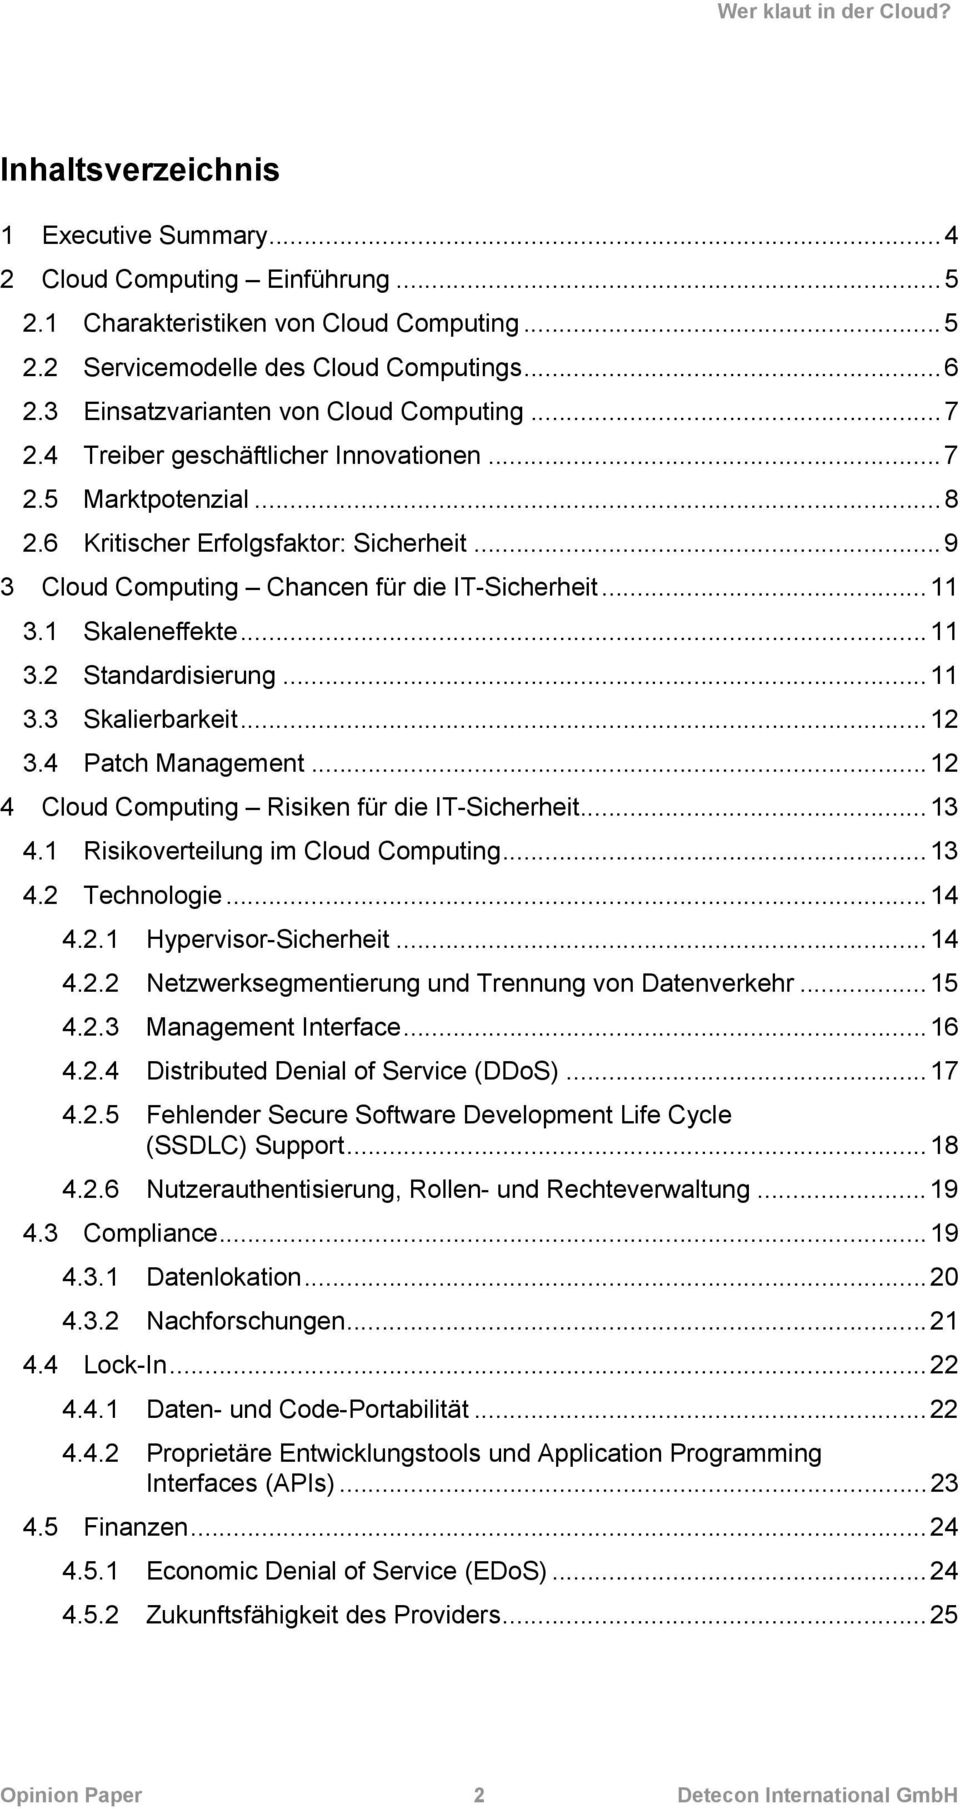 ..9 3 Cloud Computing Chancen für die IT-Sicherheit...11 3.1 Skaleneffekte...11 3.2 Standardisierung...11 3.3 Skalierbarkeit...12 3.4 Patch Management.